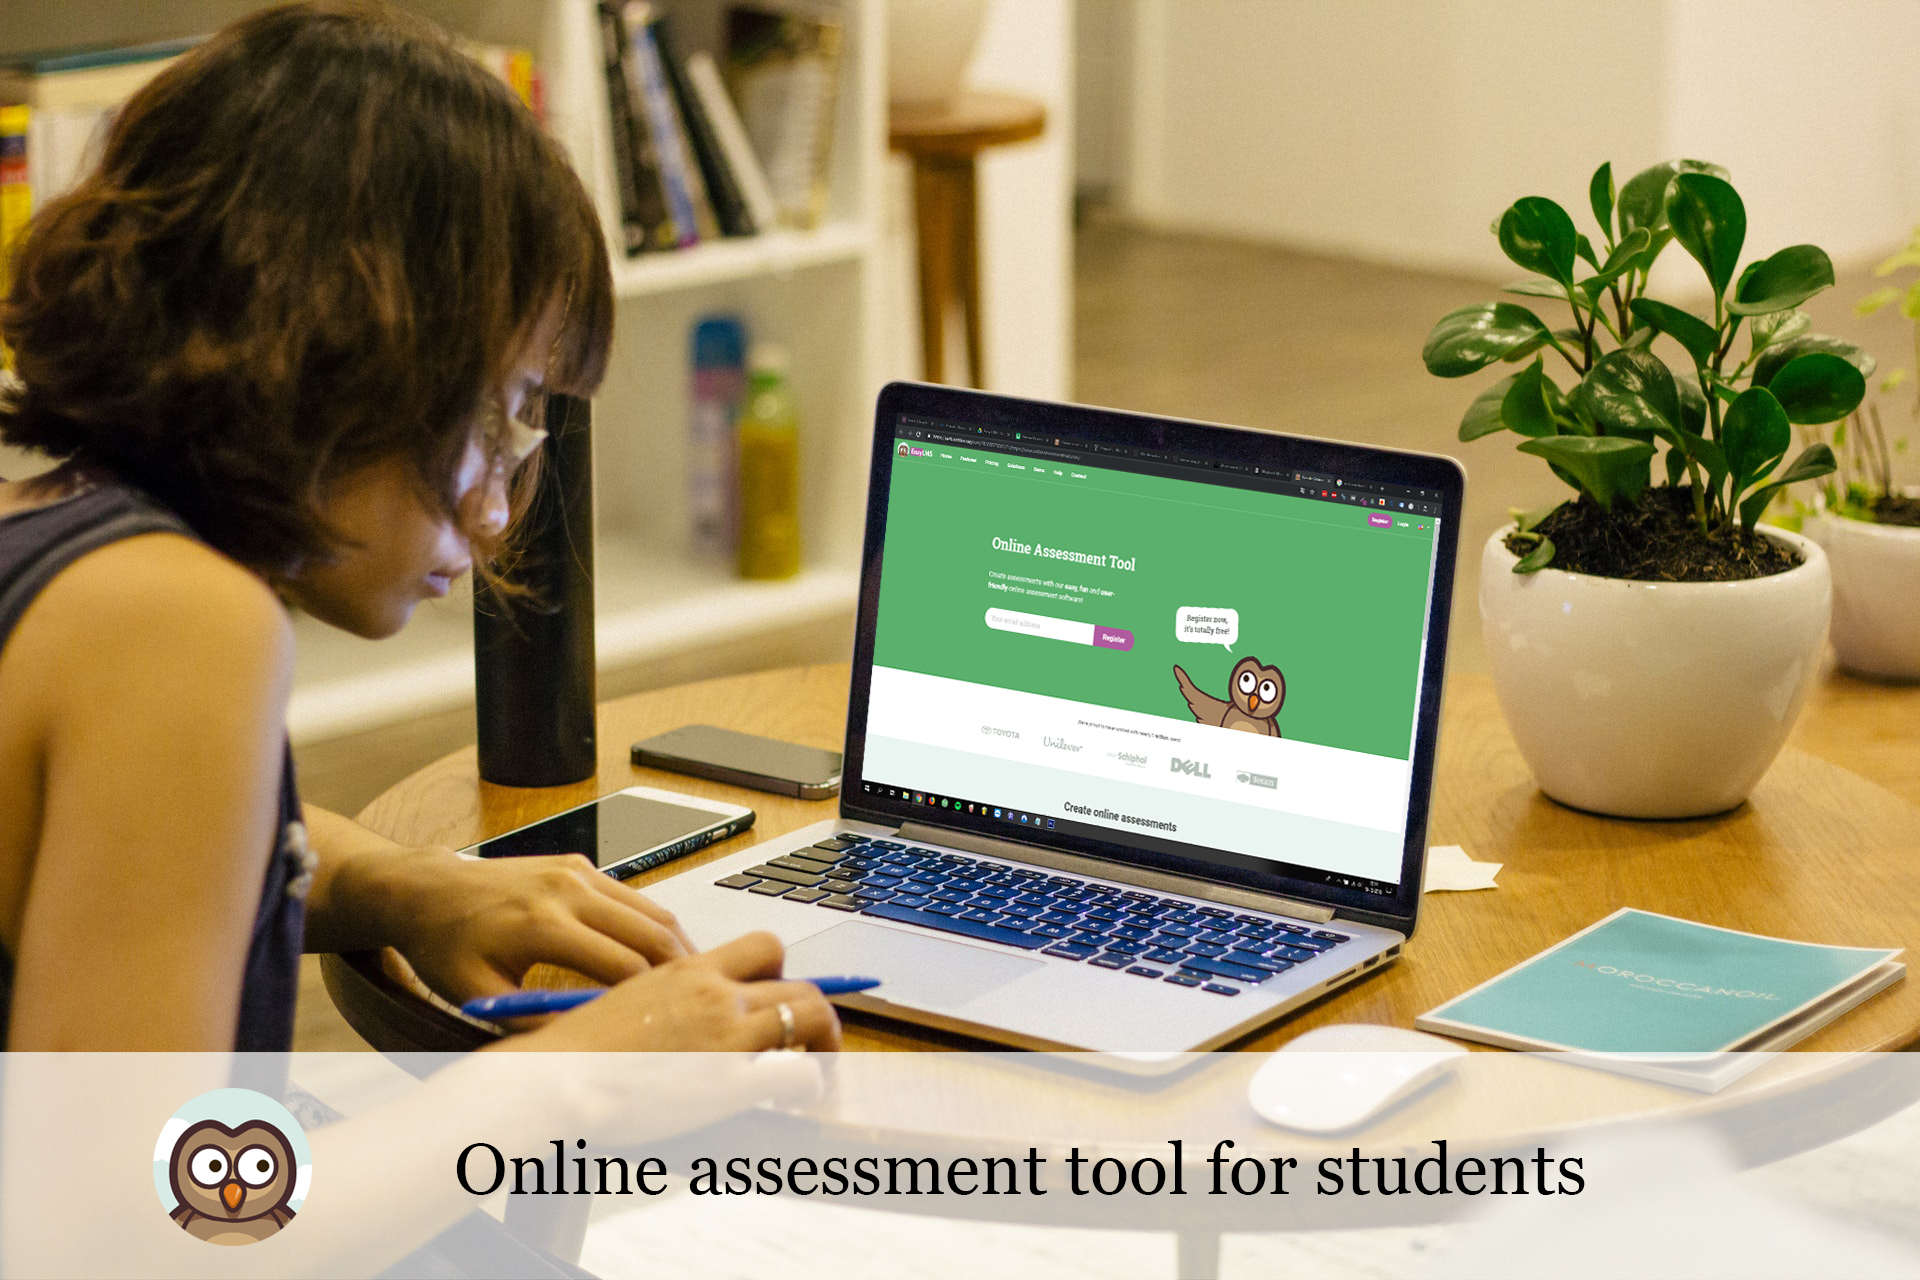 Online assessment tool for students